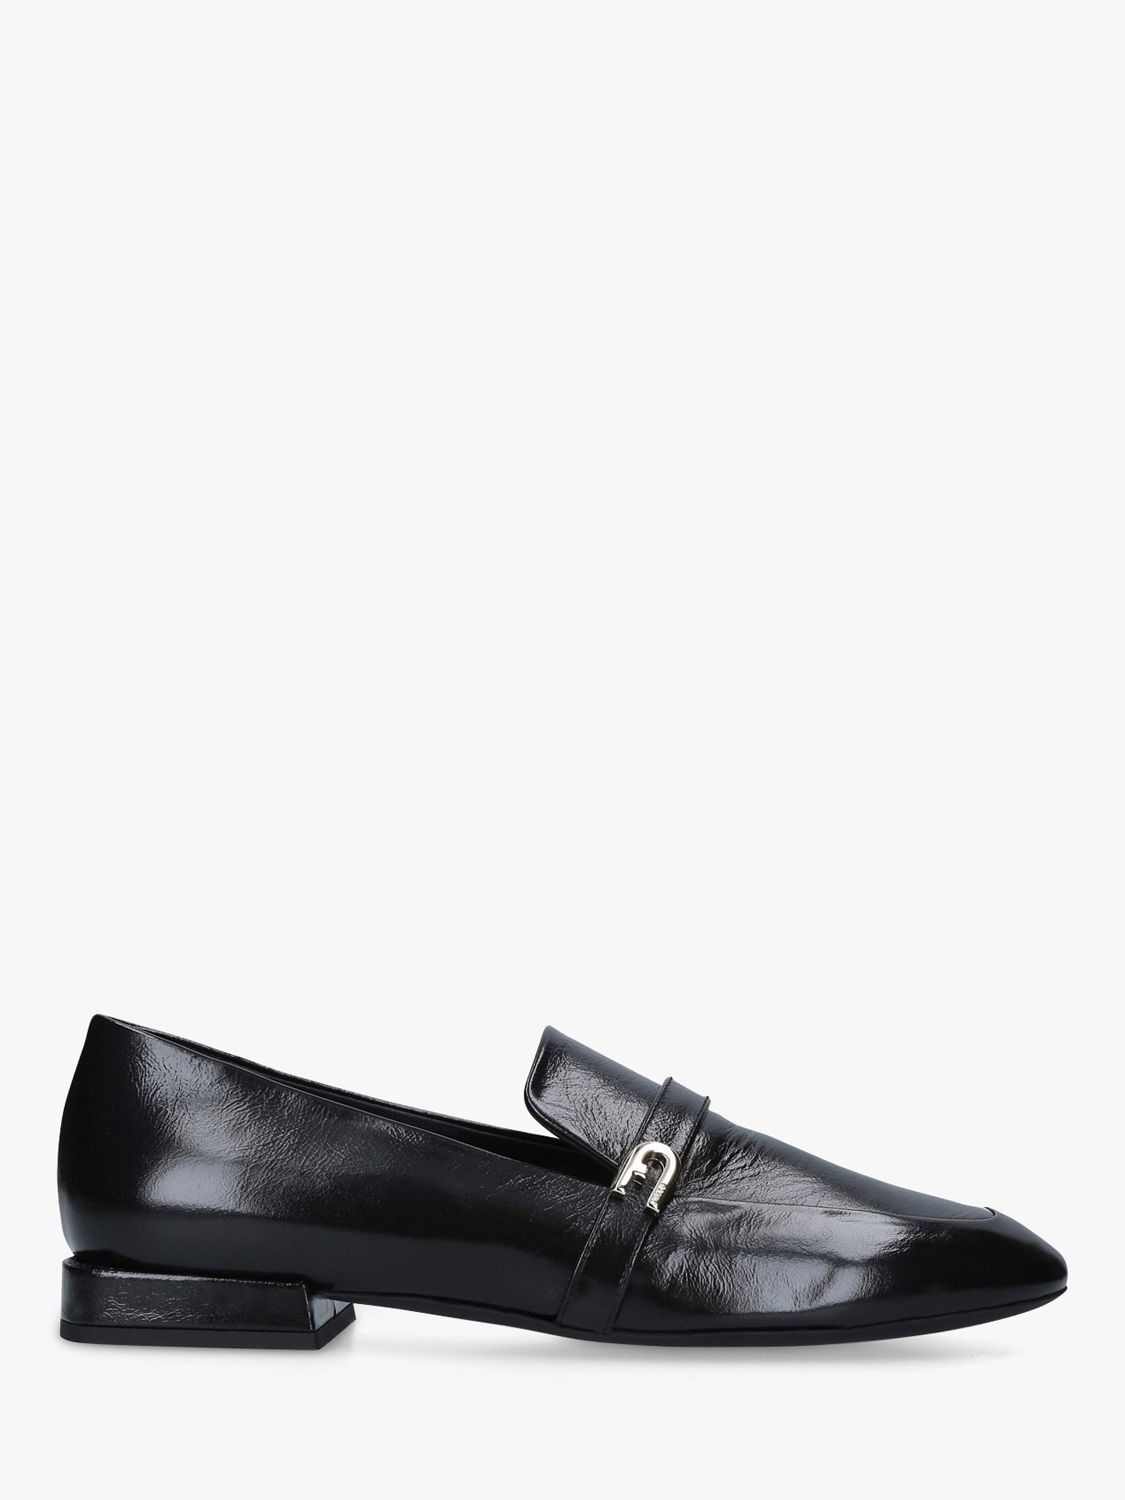 Furla Furla 1927 Leather Loafers, Black